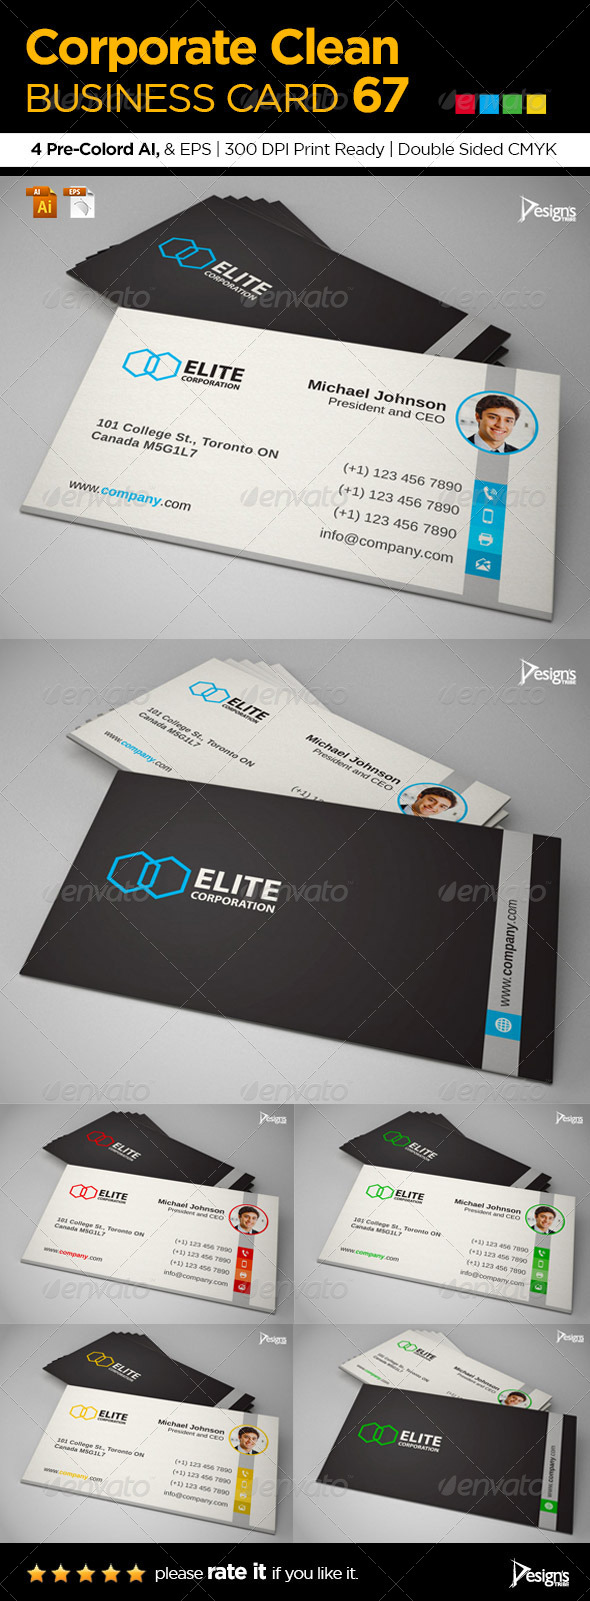 Corporate Clean Business Card 67 - Business Cards Print Templates